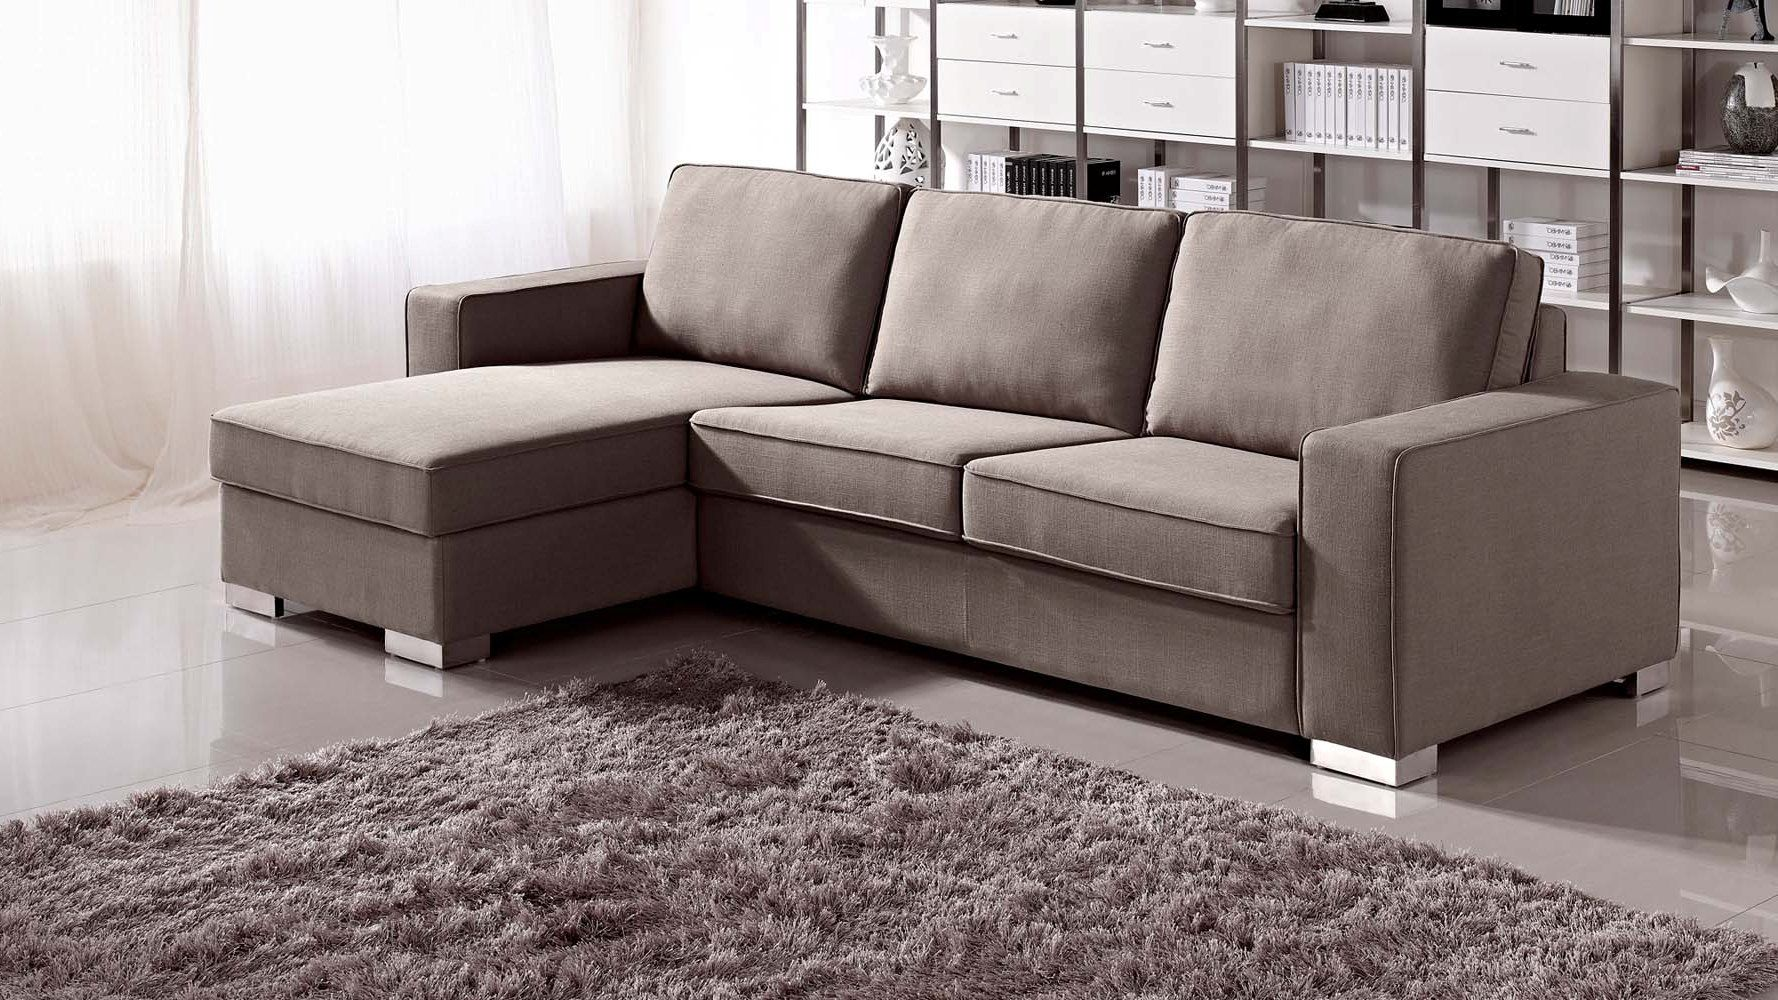 Modern Simple Sectional Sofa Sleeper With Storage And Purple Cushions Plus  Broken White Rug As Well As Small Sleeper Sofa And Chesterfield Sofa, ...